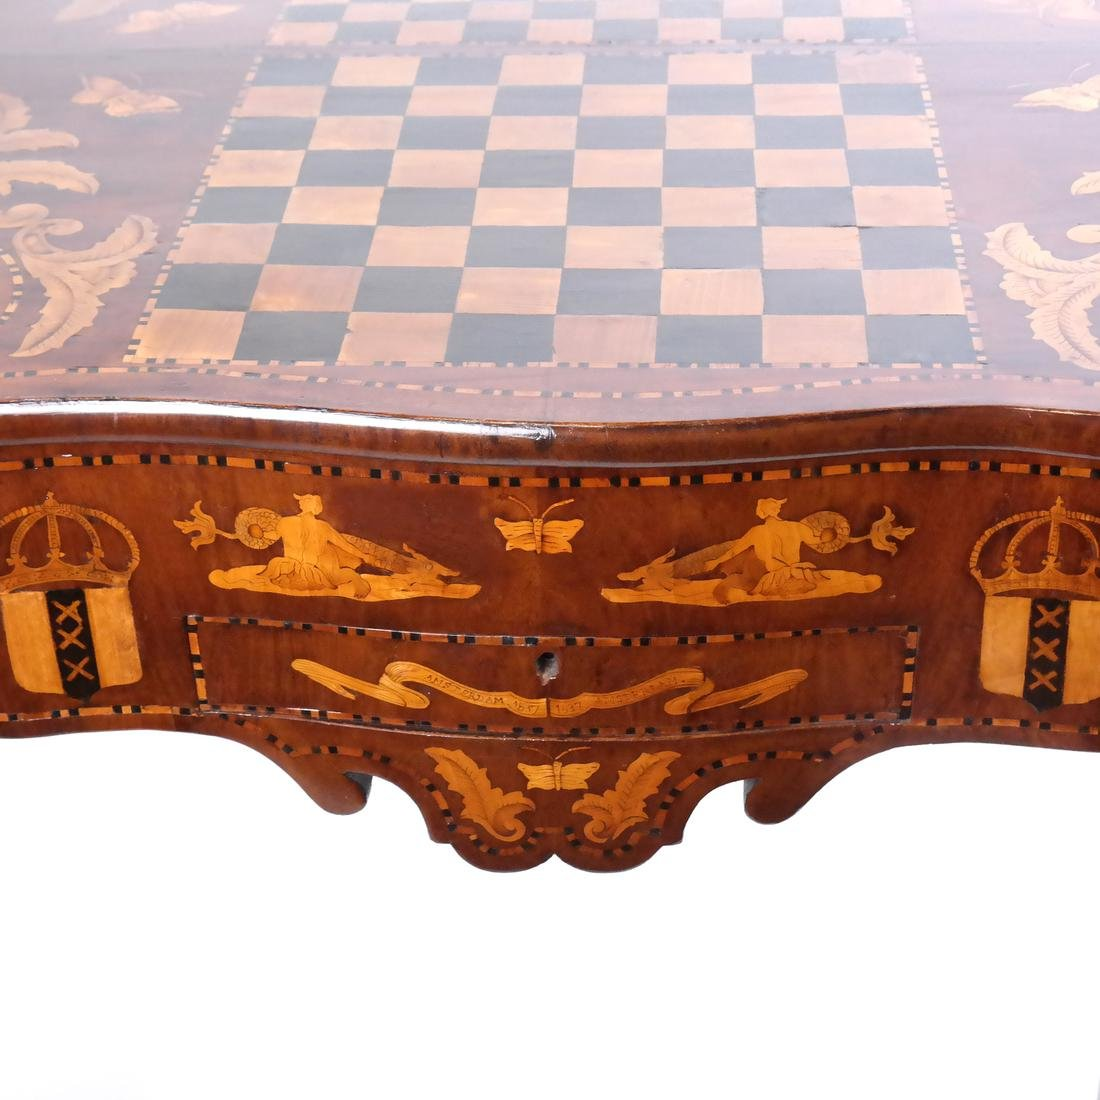 Antique Continental Games Table - 5